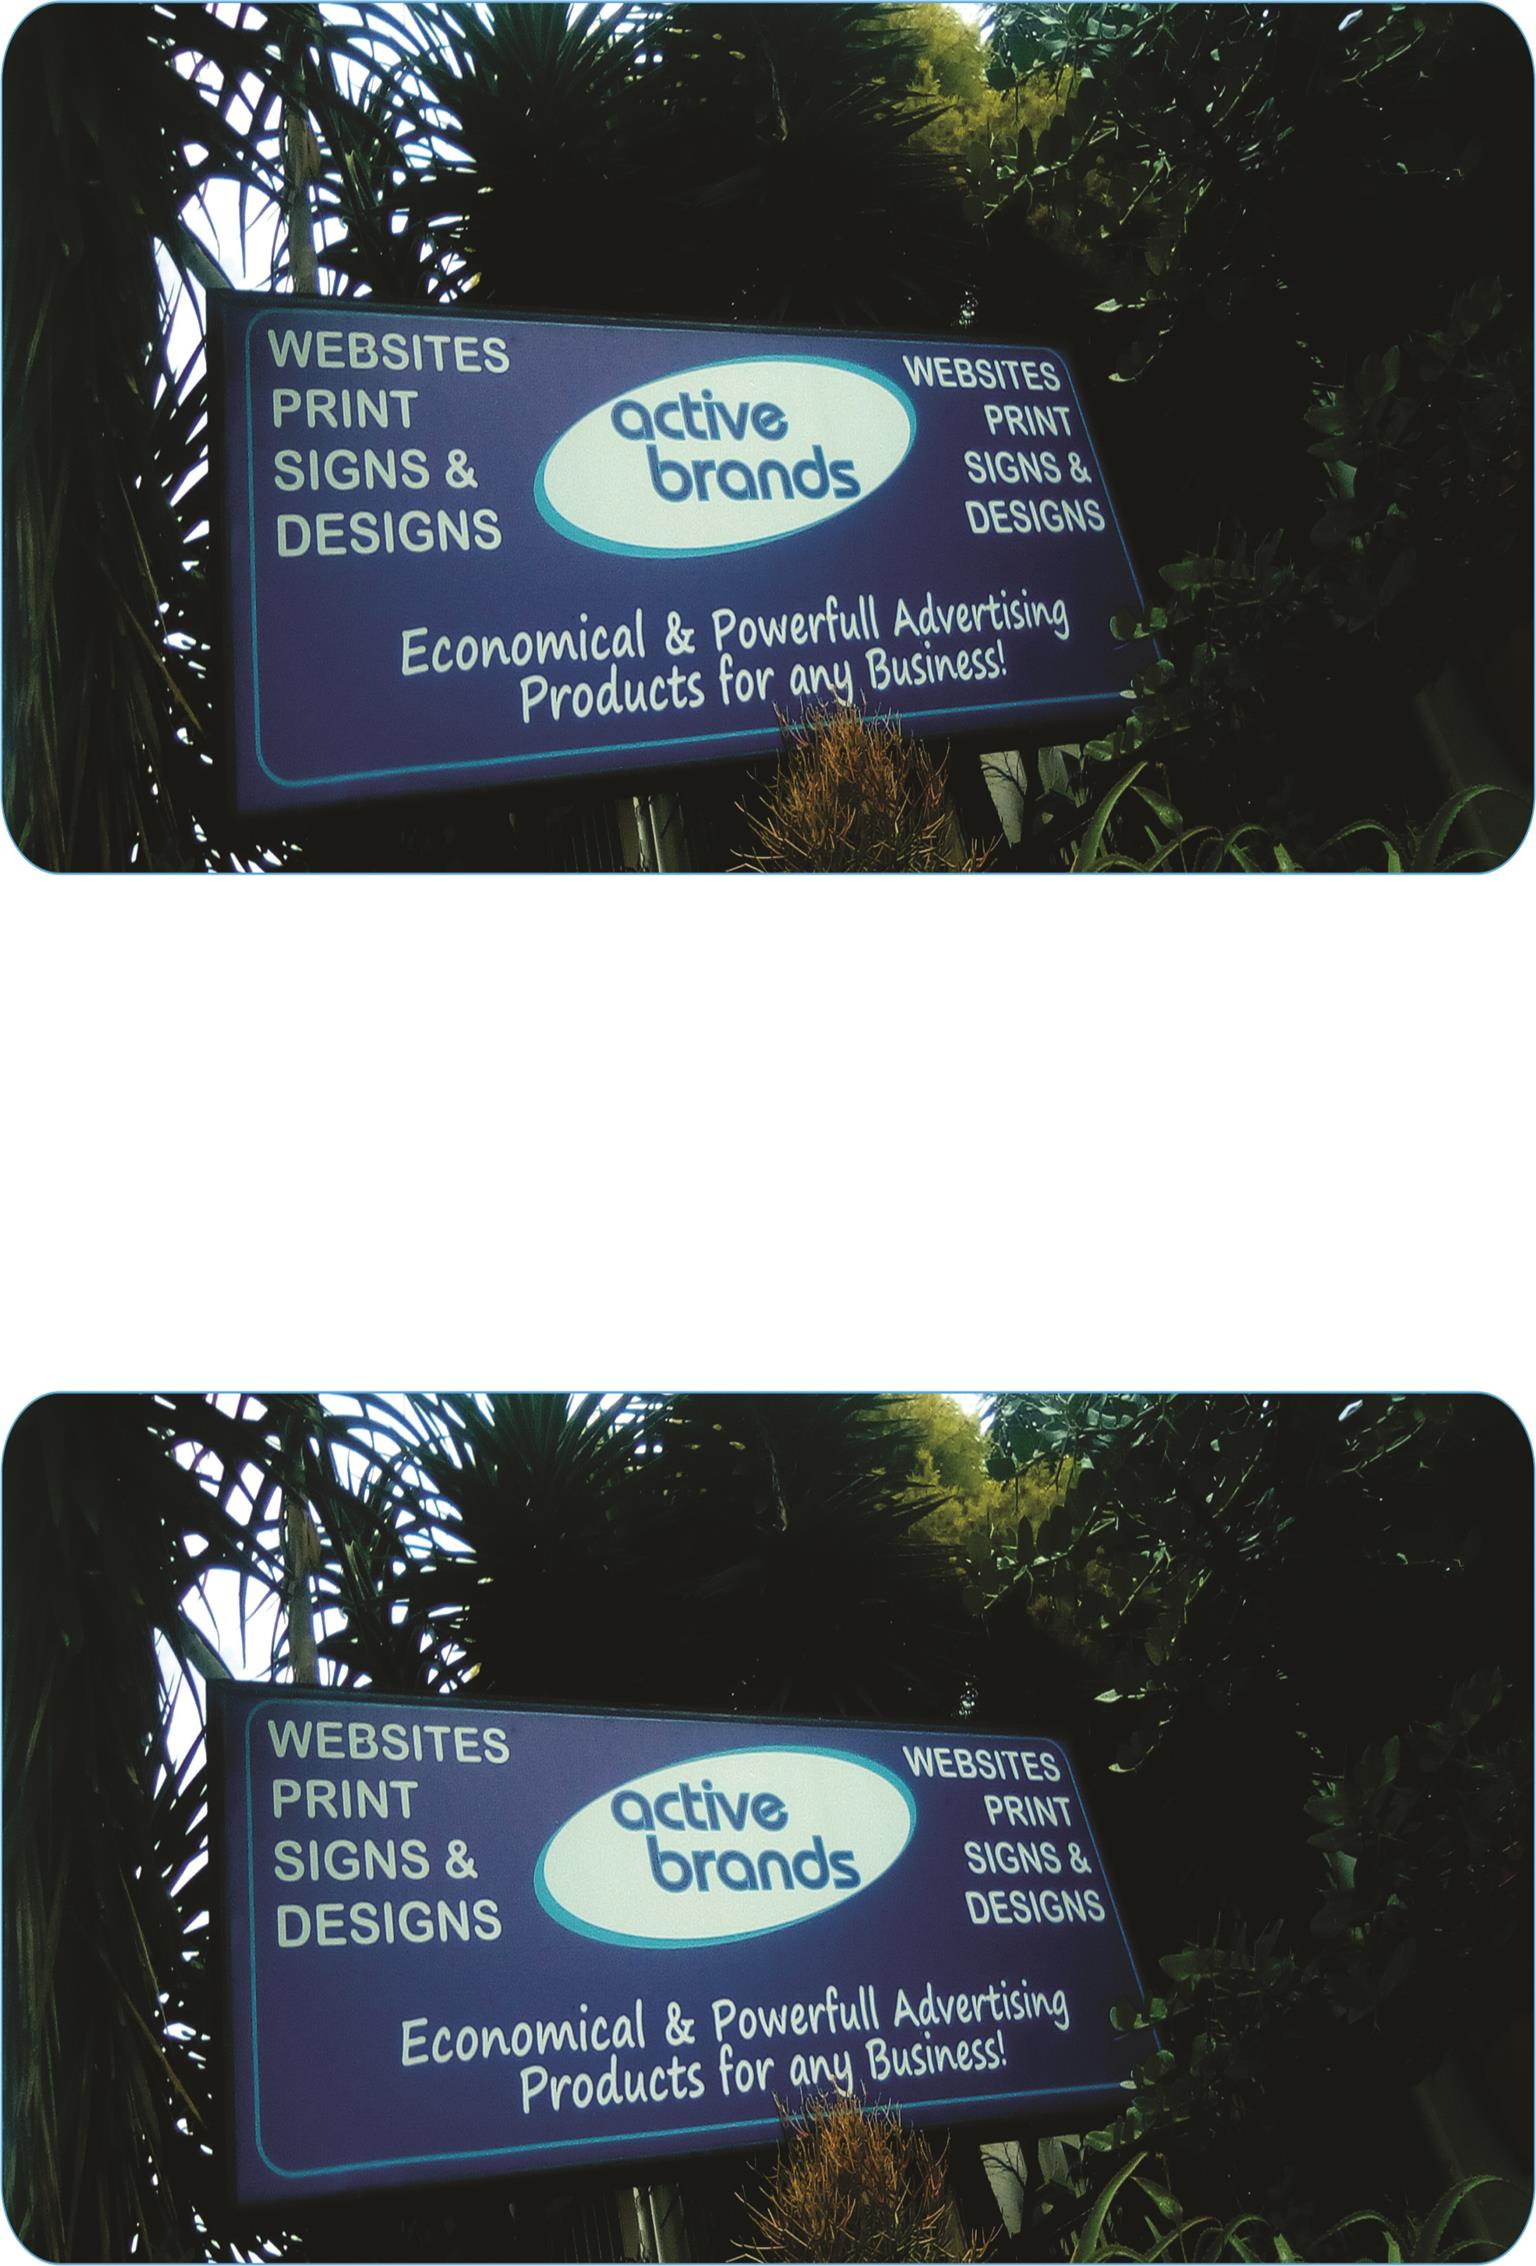 Large Format, Digital & Litho Printing / Branding Company Equipment -- FOR SALE